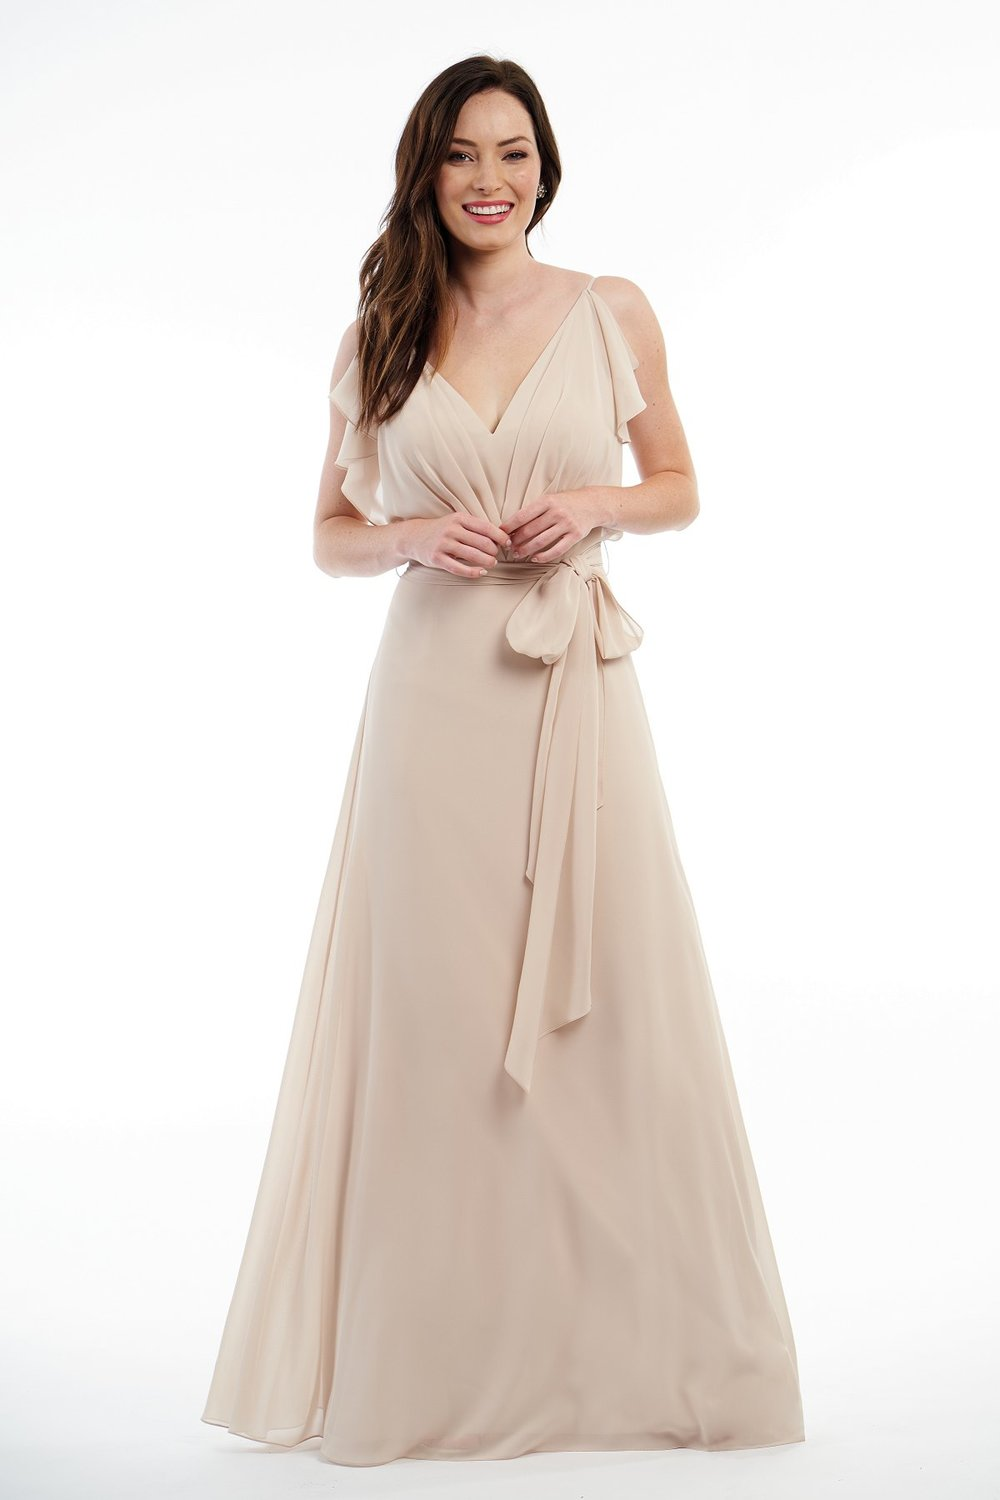 P216005 -  Beautiful charlotte chiffon floor length bridesmaid dress with a flattering V-neckline and ruffle details on the sides of the bodice. Detailed gathers on the bodice and a belt that wraps around to create a pretty bow around the waist.      Available in 41 color